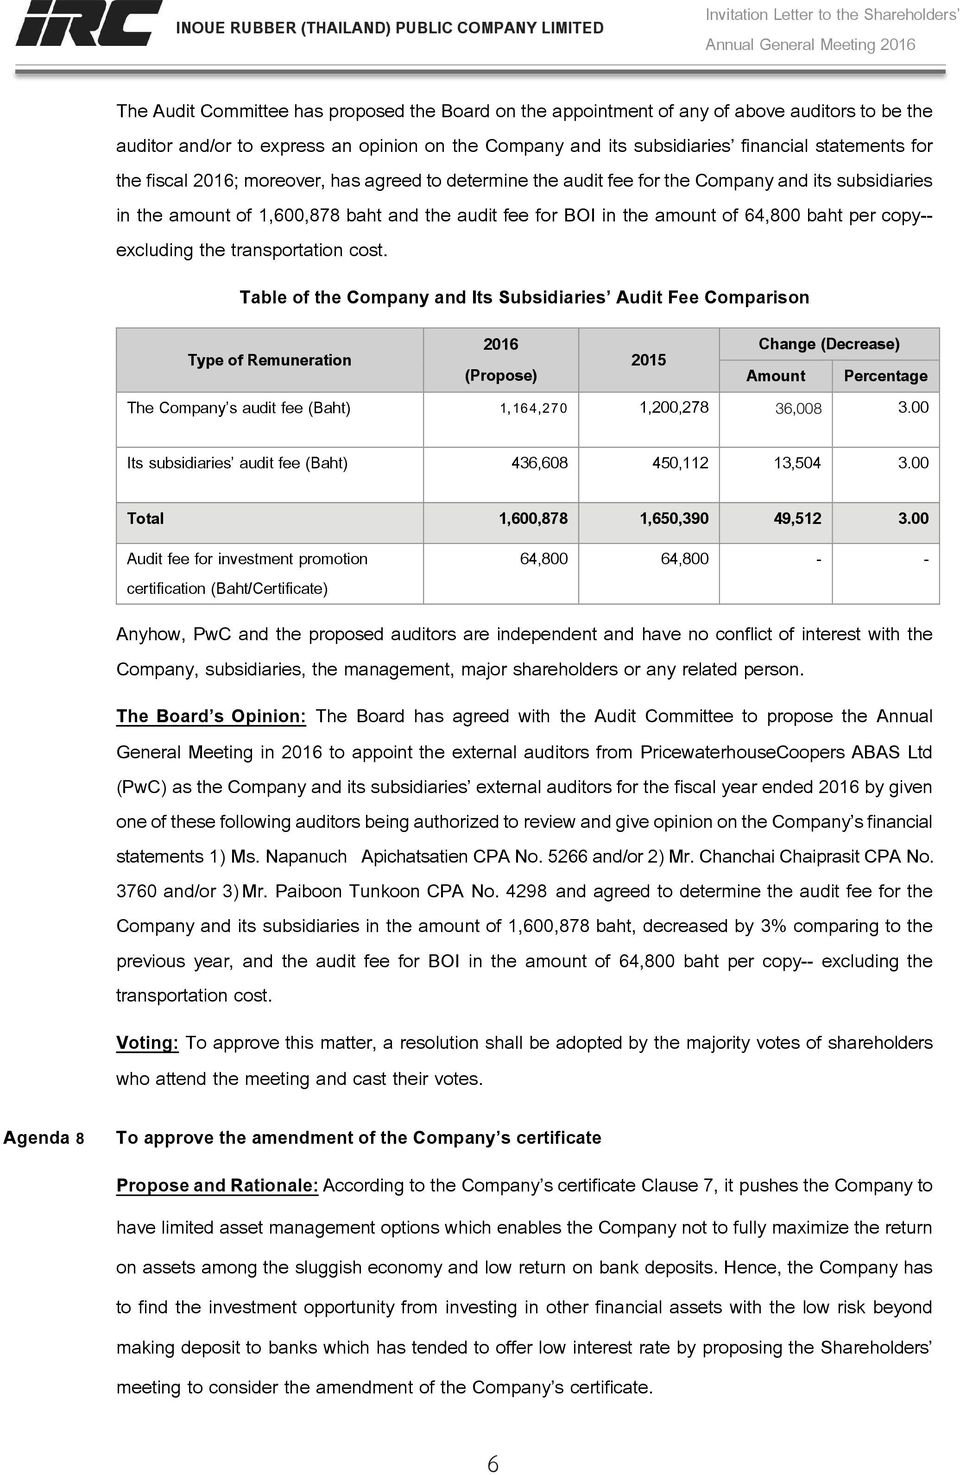 subsidiaries in the amount of 1,600,878 baht and the audit fee for BOI in the amount of 64,800 baht per copy-- excluding the transportation cost.